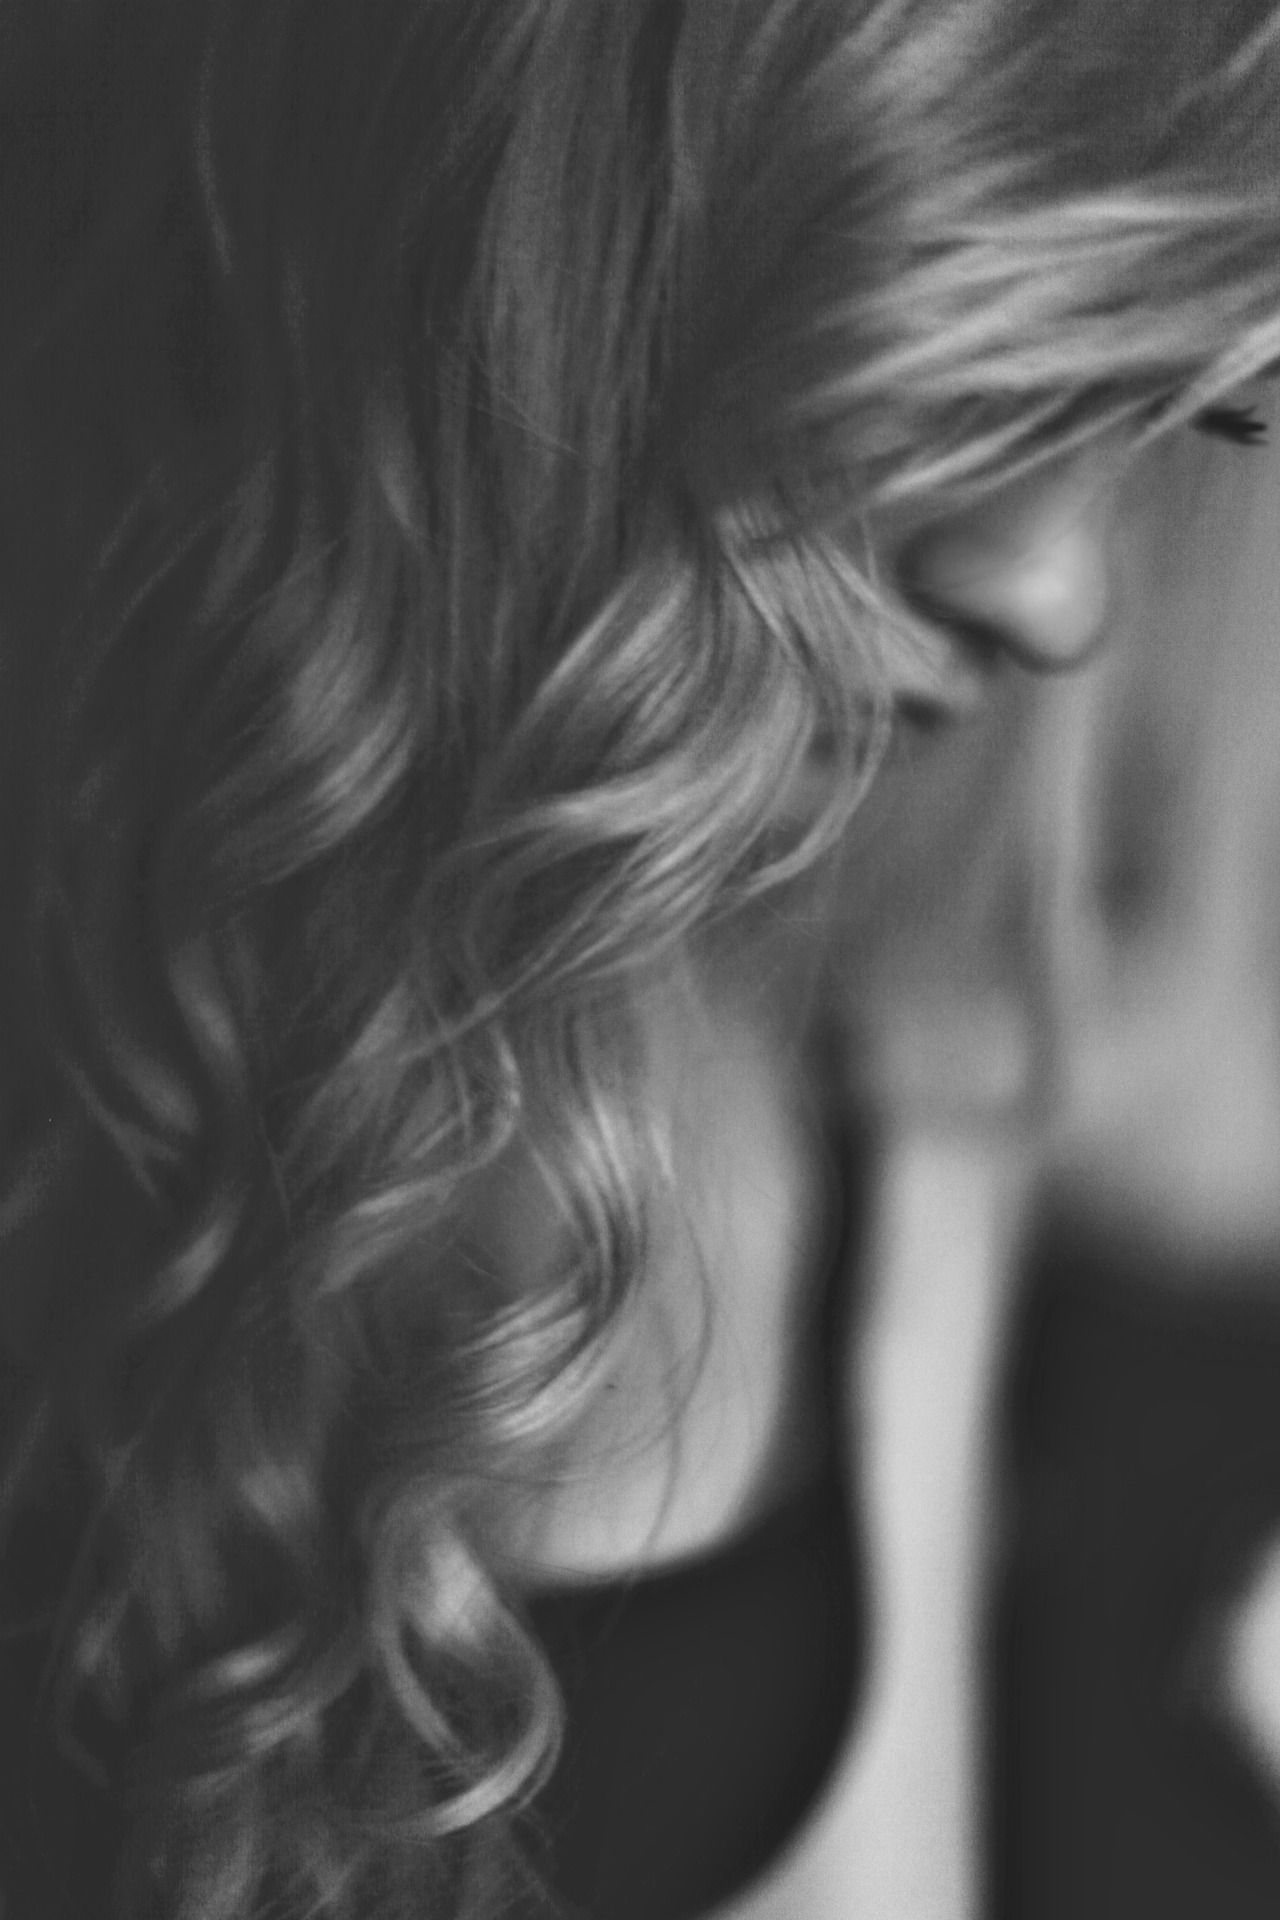 Pin by yeliz atici on photography pinterest hair and beauty